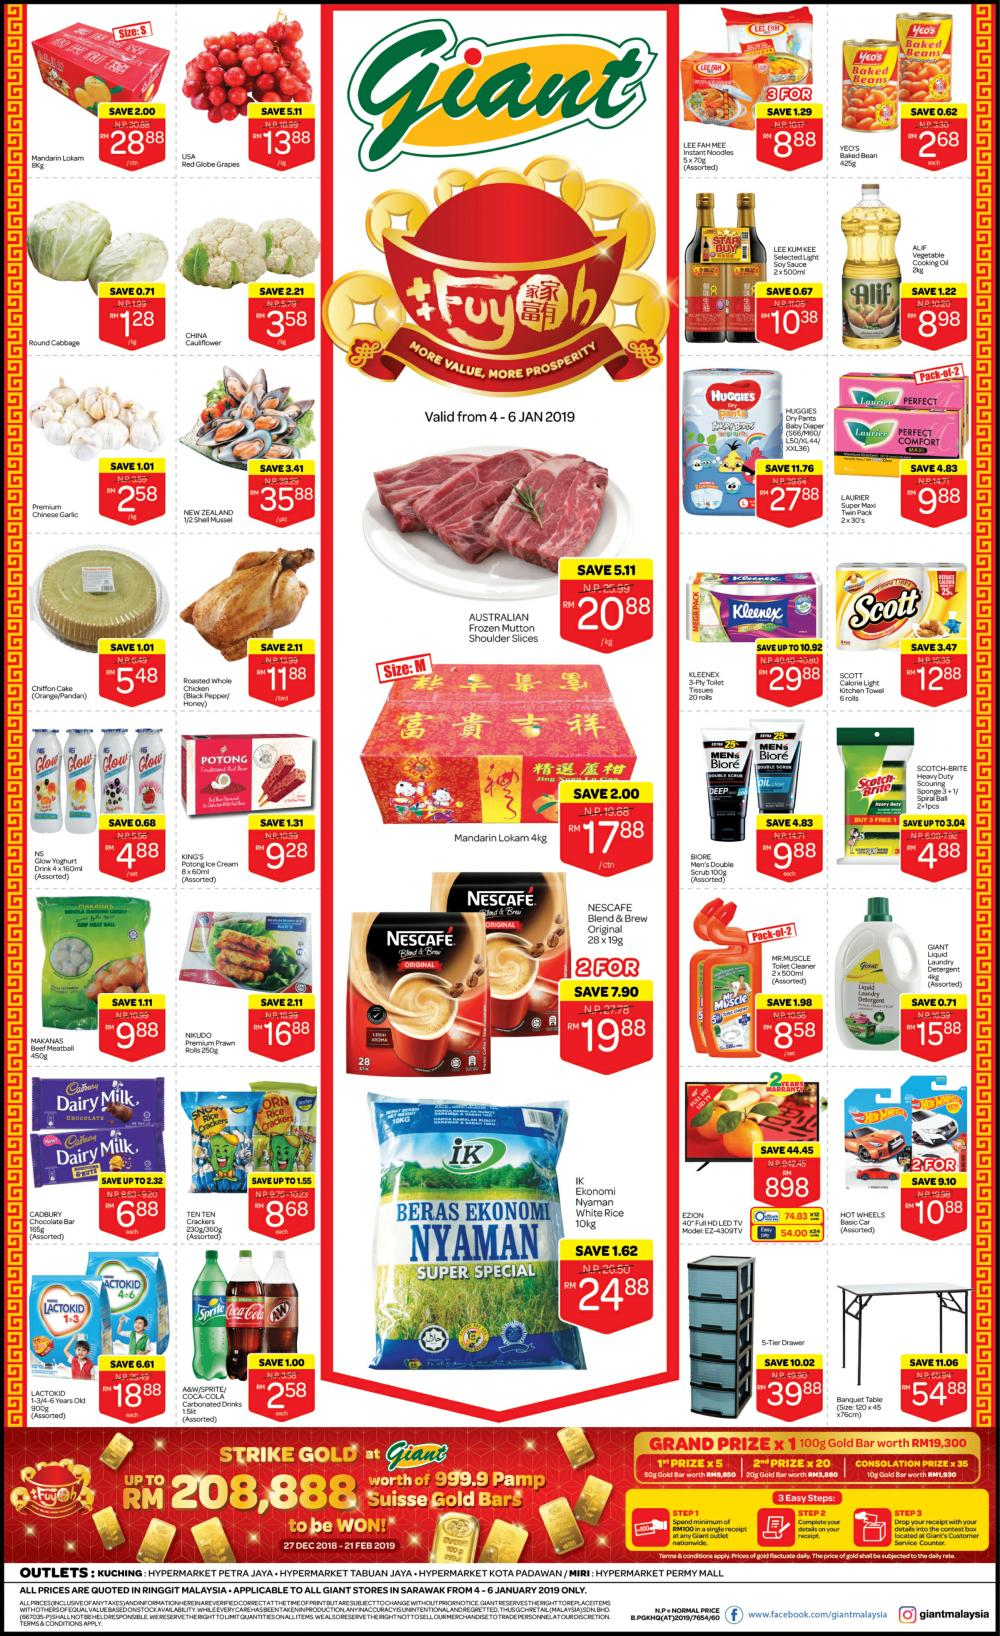 Giant FUYOH Weekend Promotion at Sarawak (4 January 2019 - 6 January 2019)